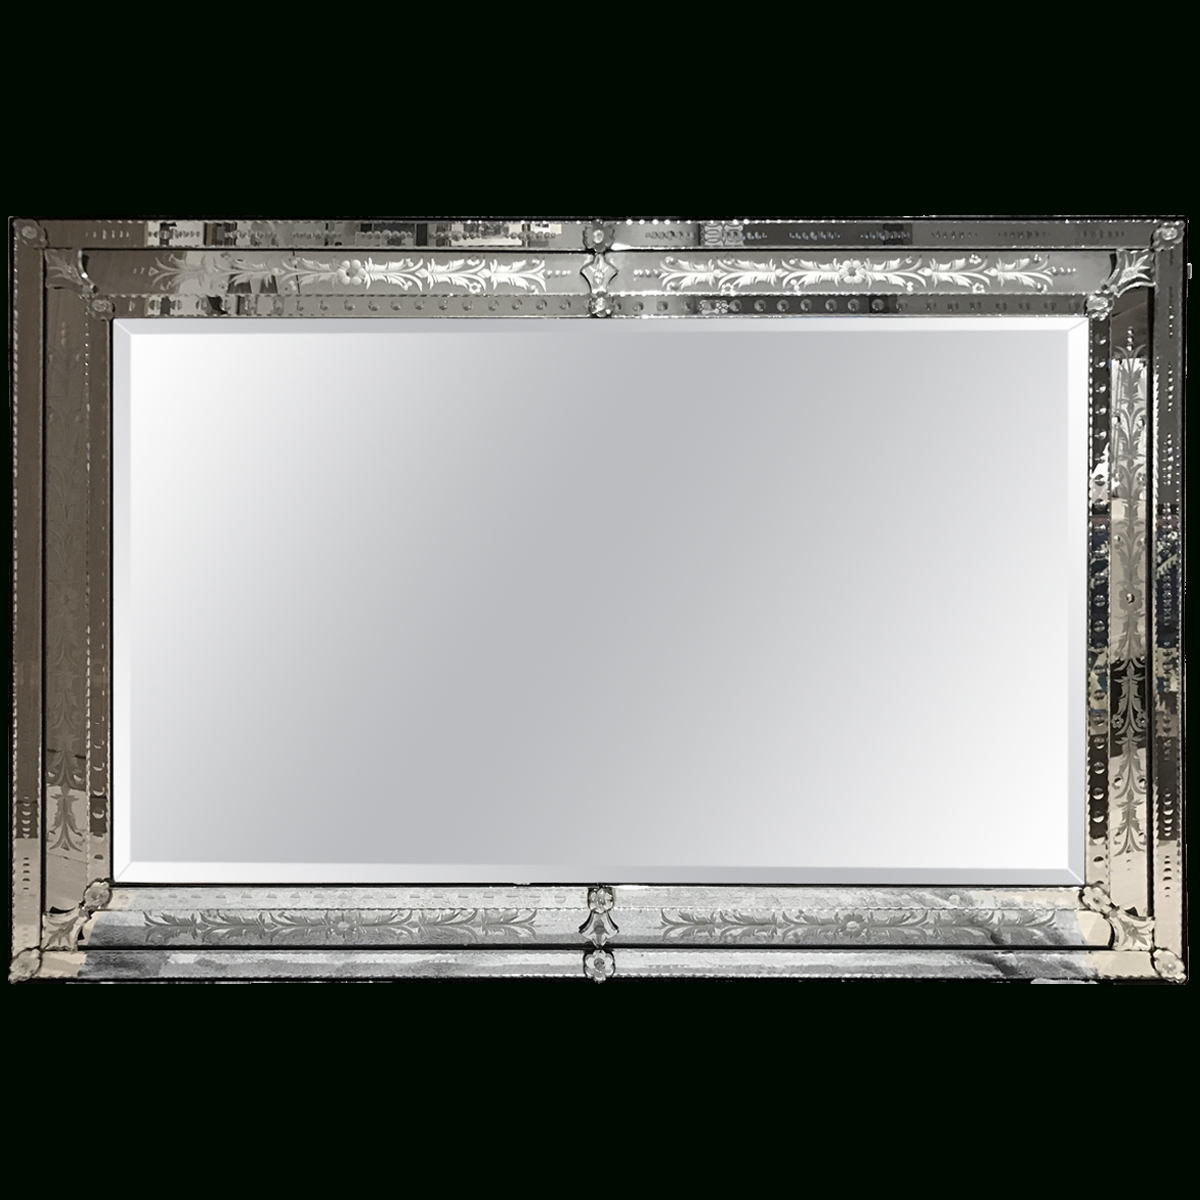 Viyet – Designer Furniture – Accessories – Vintage Large Etched Intended For Rectangular Venetian Mirrors (View 13 of 15)